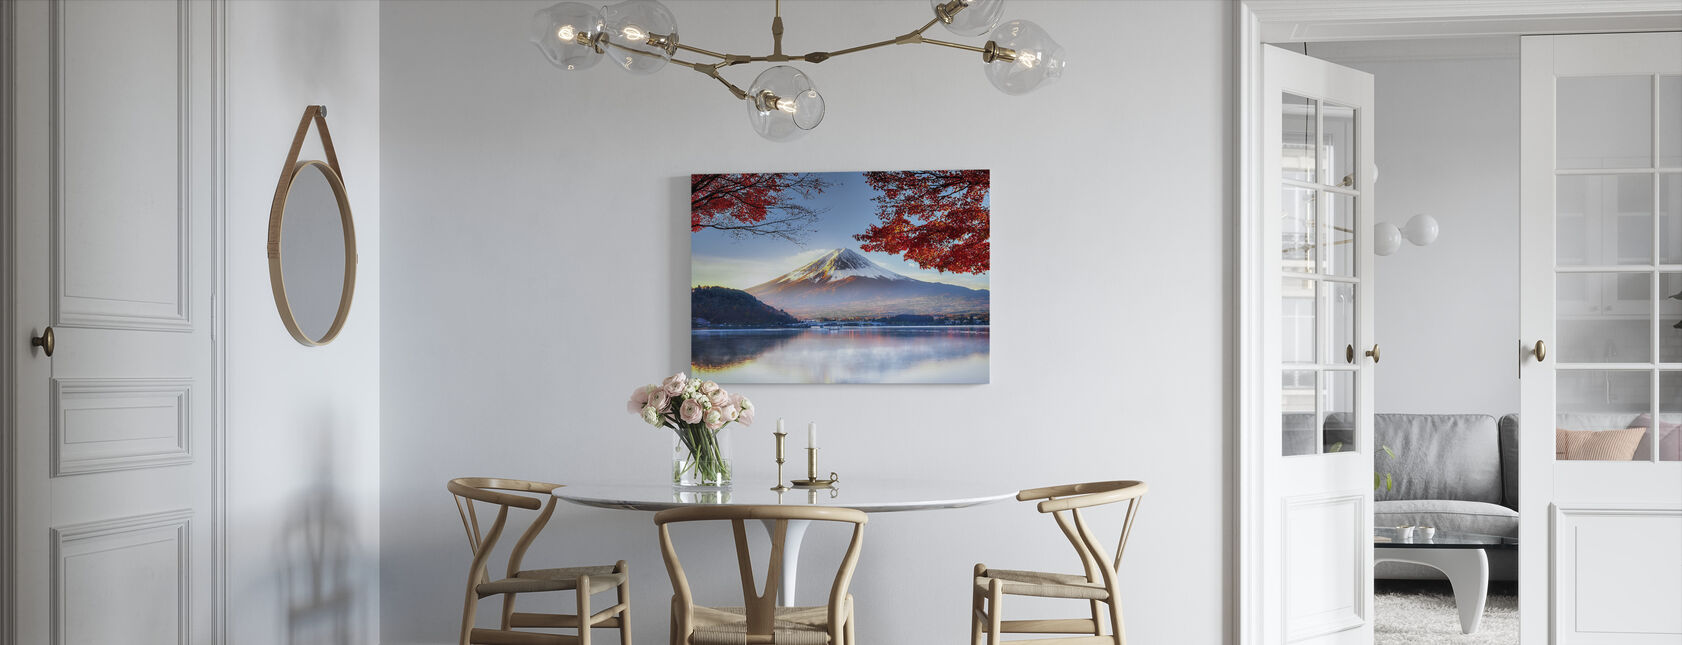 Fuji-berg in de herfst - Canvas print - Keuken